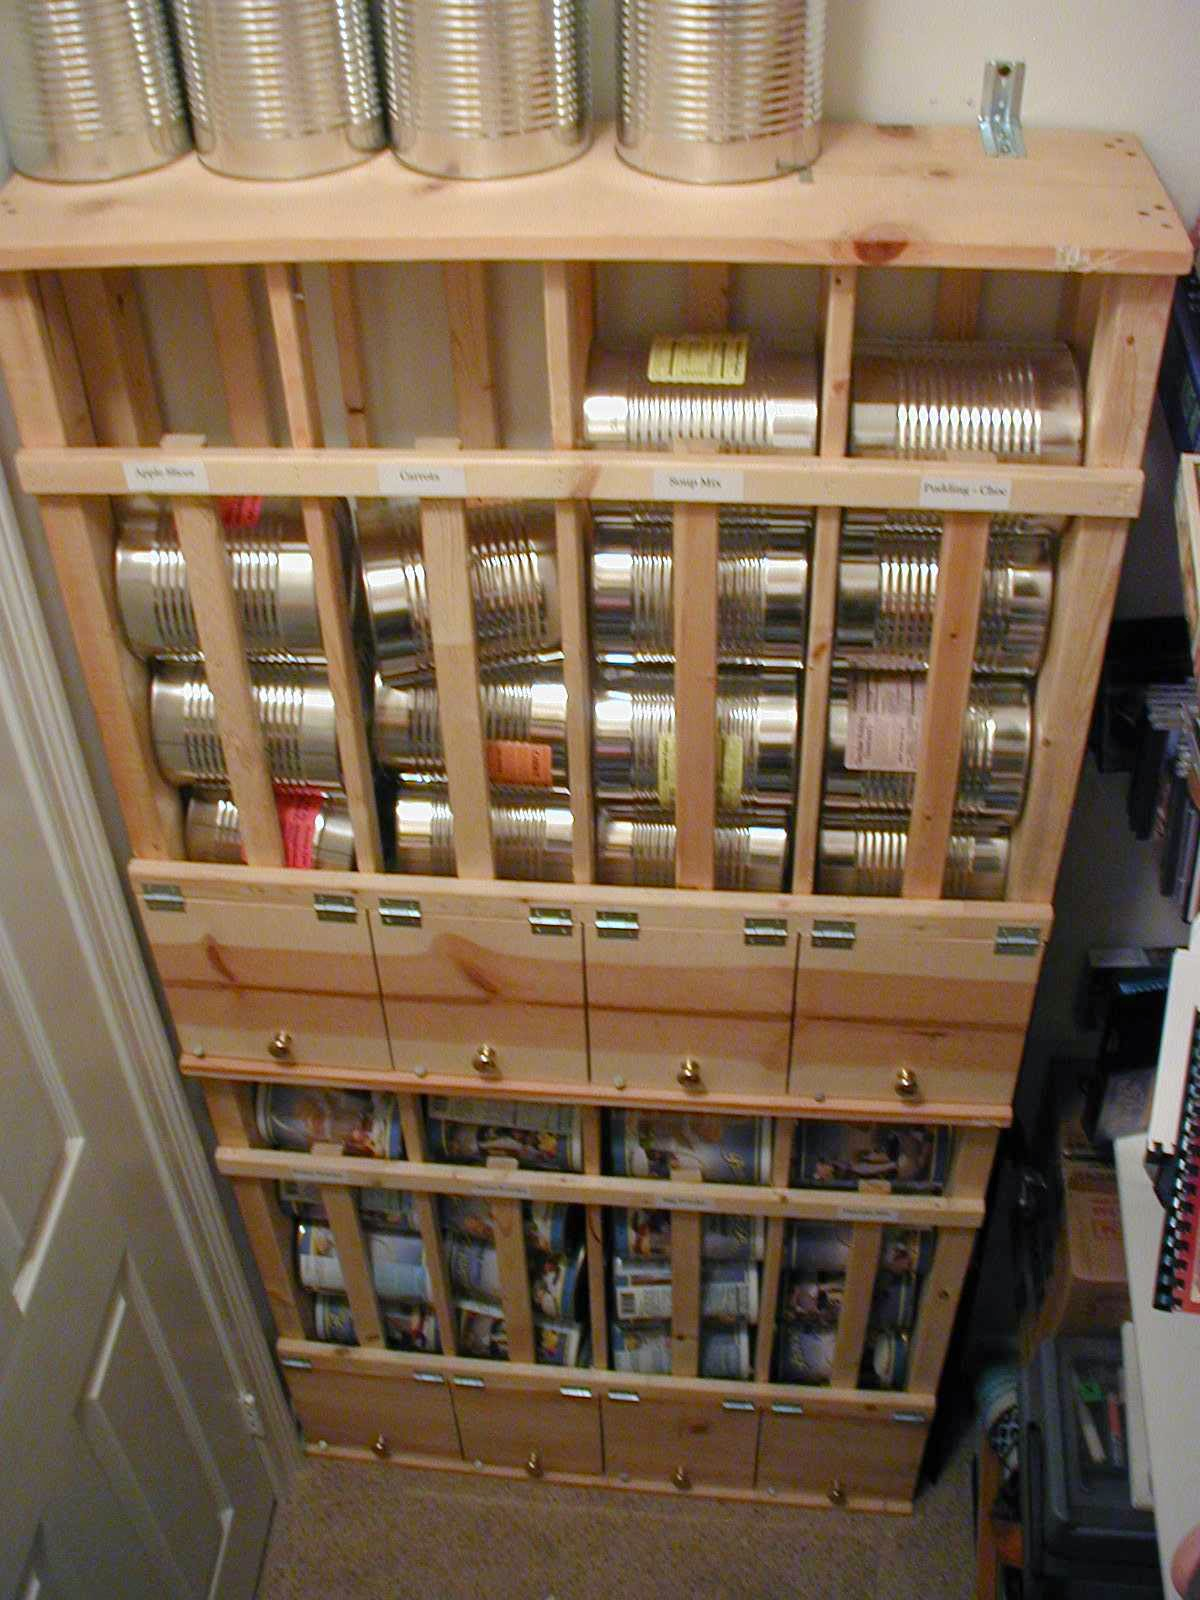 Some Pics Of Rotating Storage Units For Canned Foods.